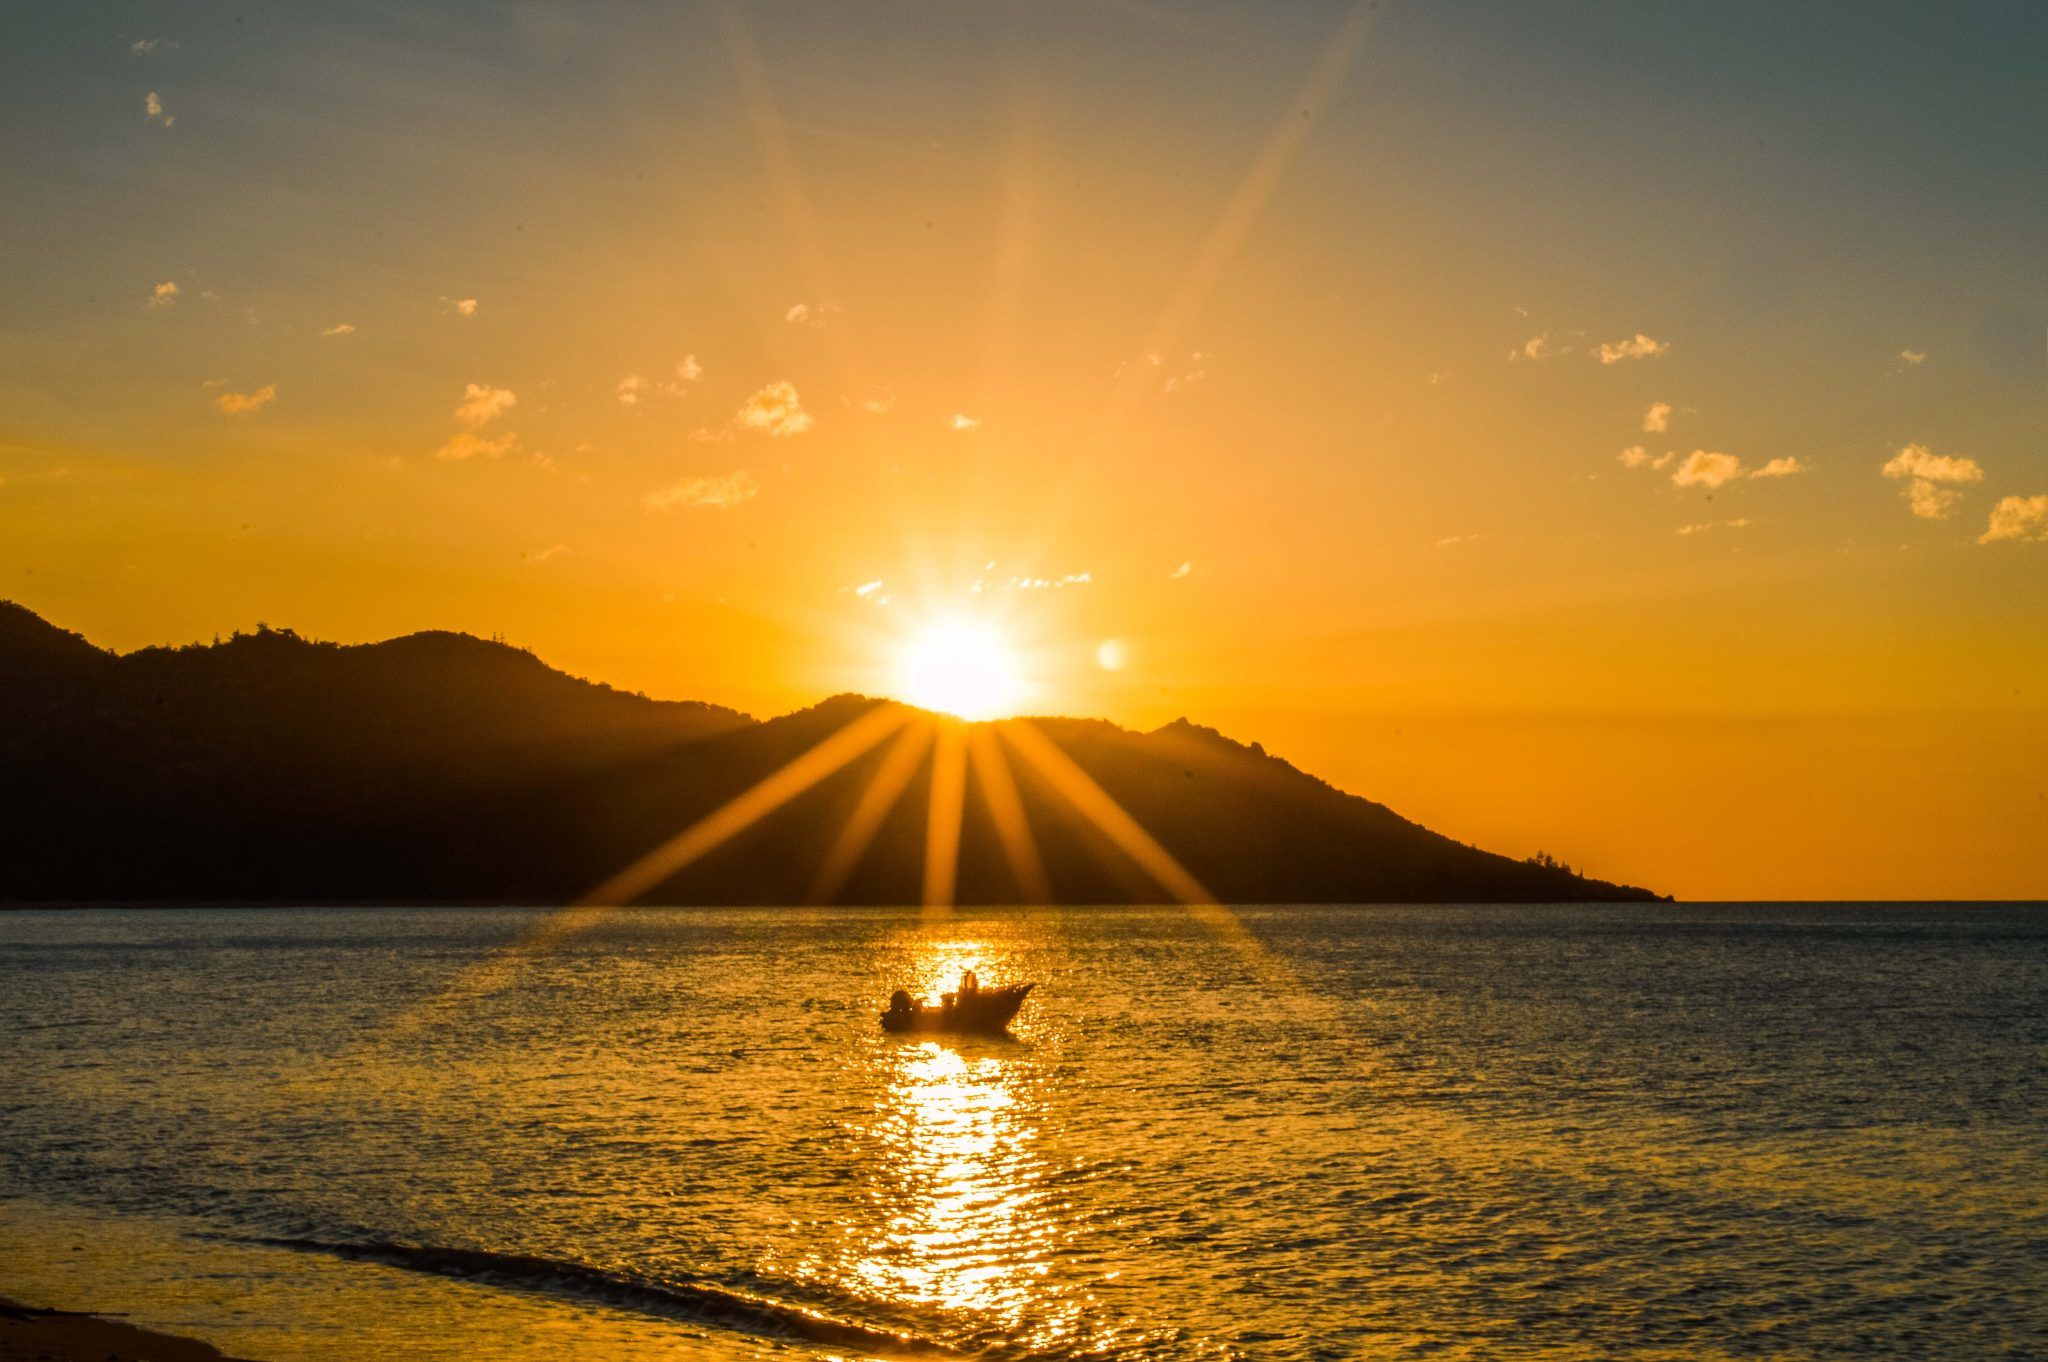 Magnificent sunset over a headland at Horseshoe Bay on Magnetic Island